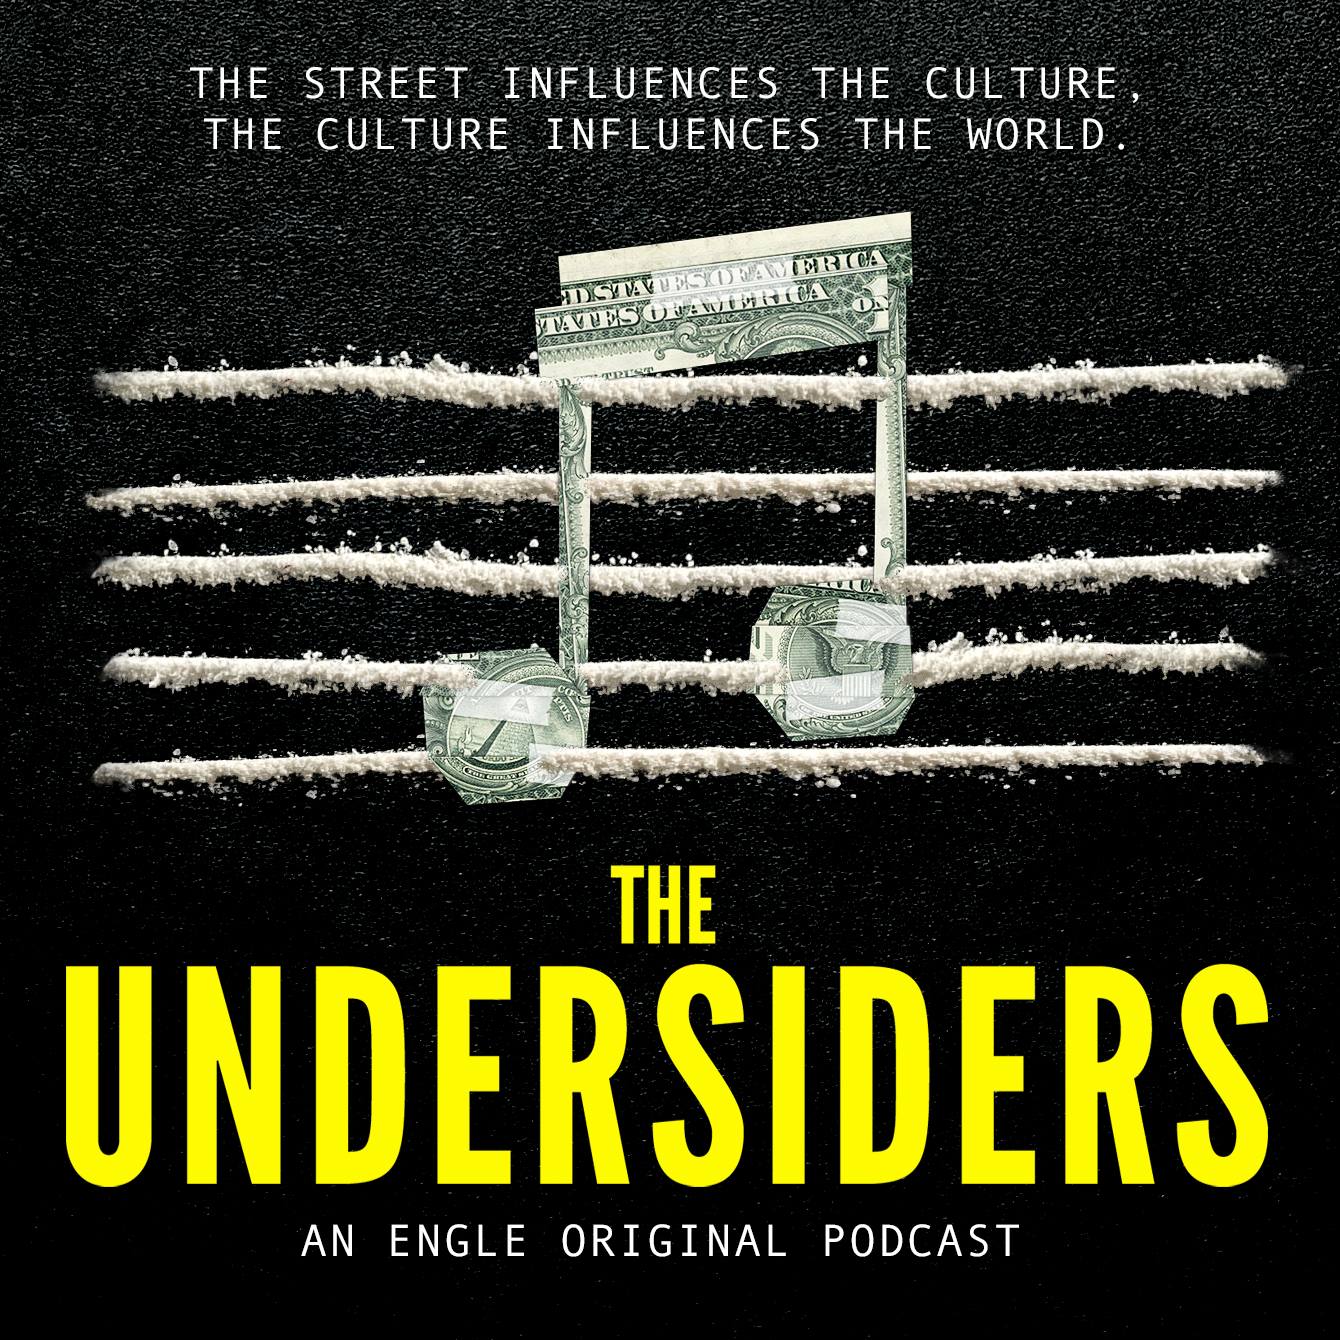 The-Undersiders-carre.jpg